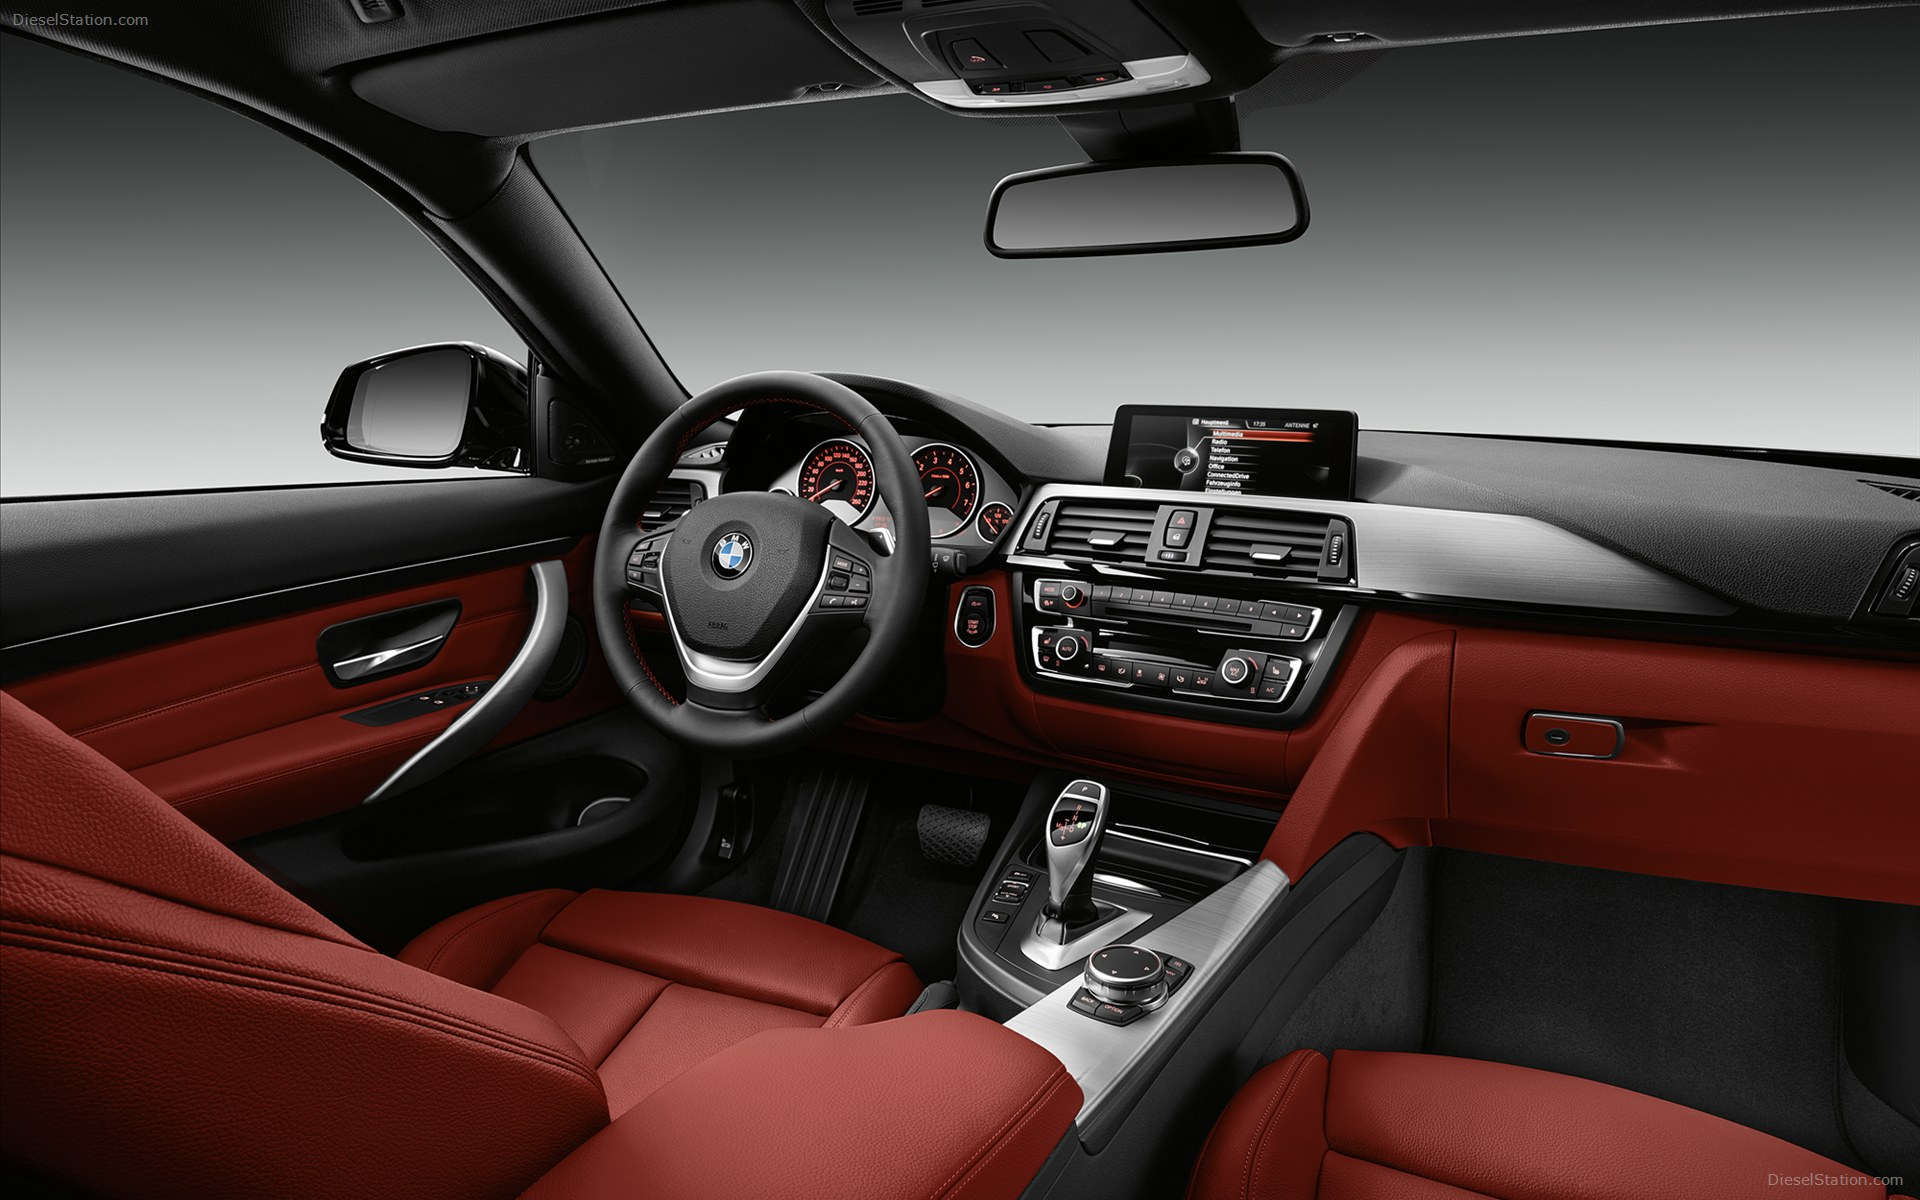 The interior is spacious thanks to the longer wheel base and together with the longer and more raked wind shield the Coupe offers a spacious feel.